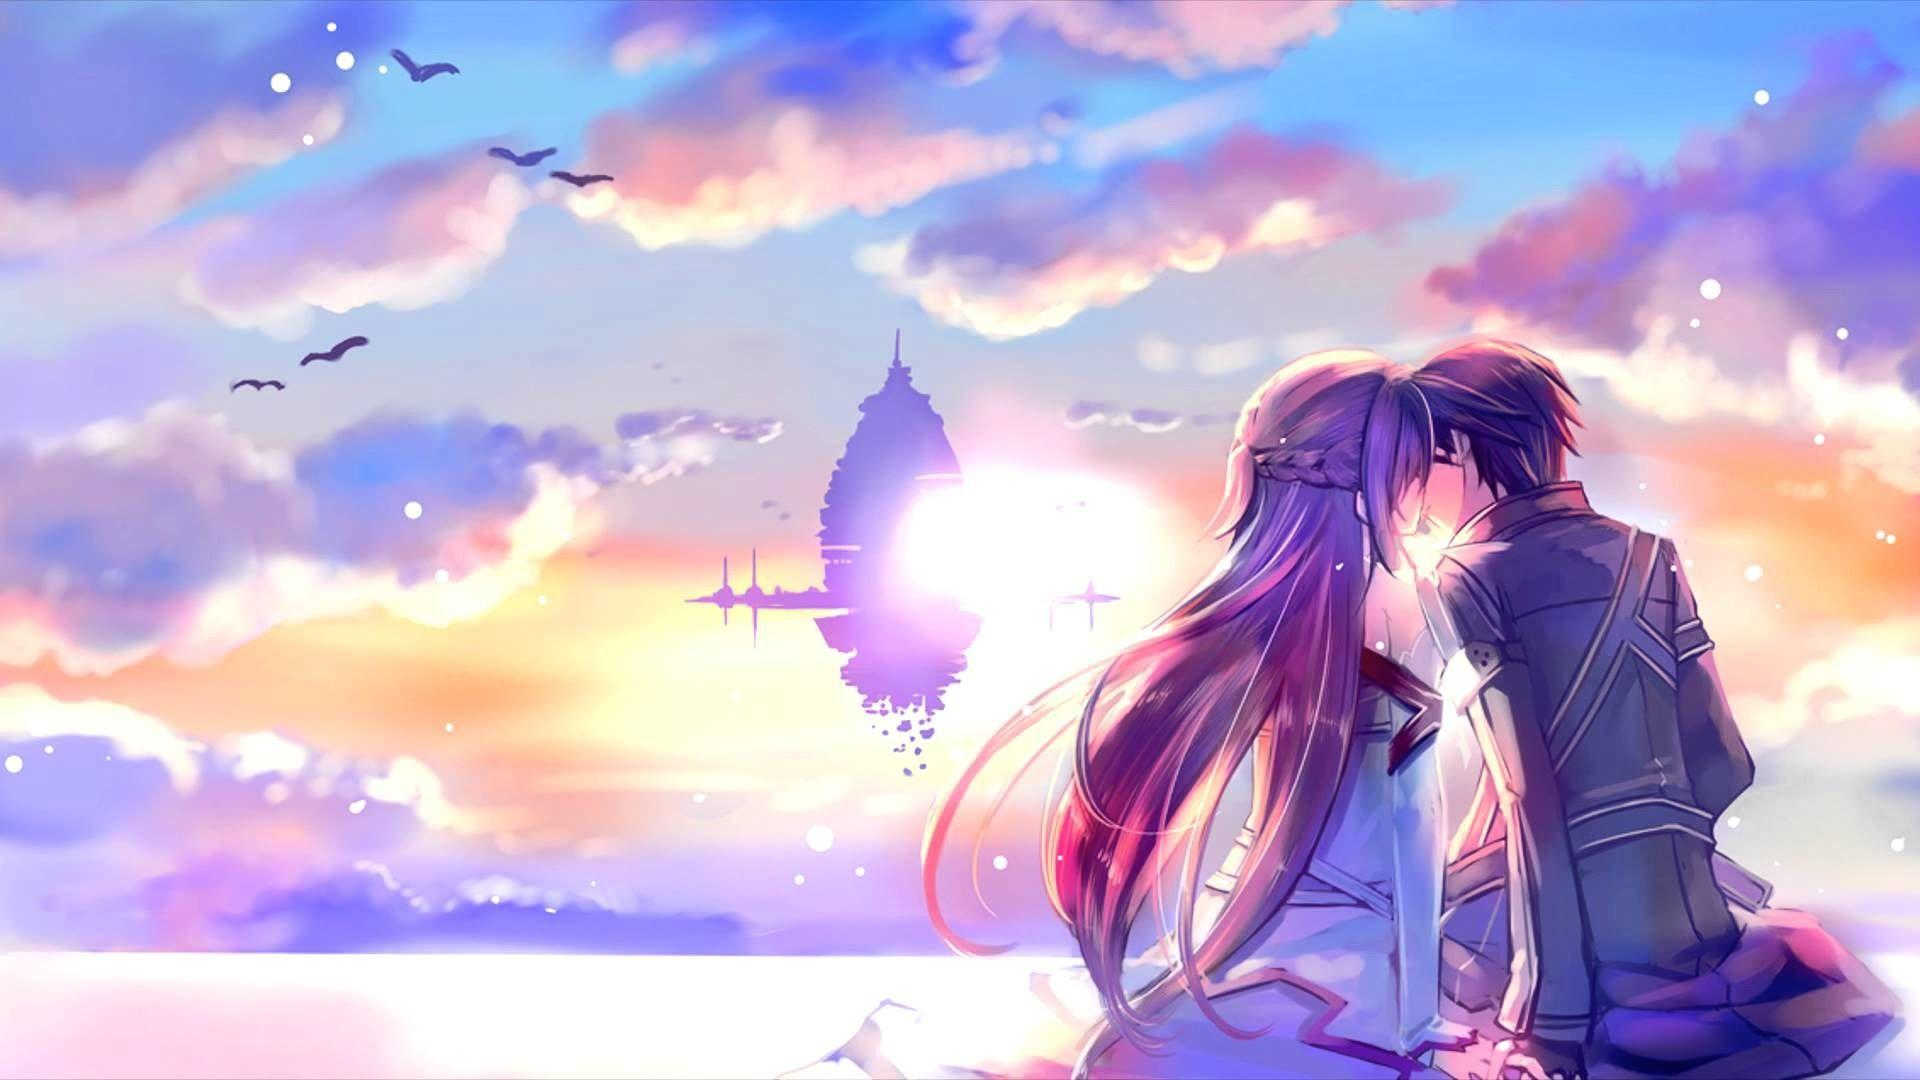 romance anime wallpapers hd wallpaper cave